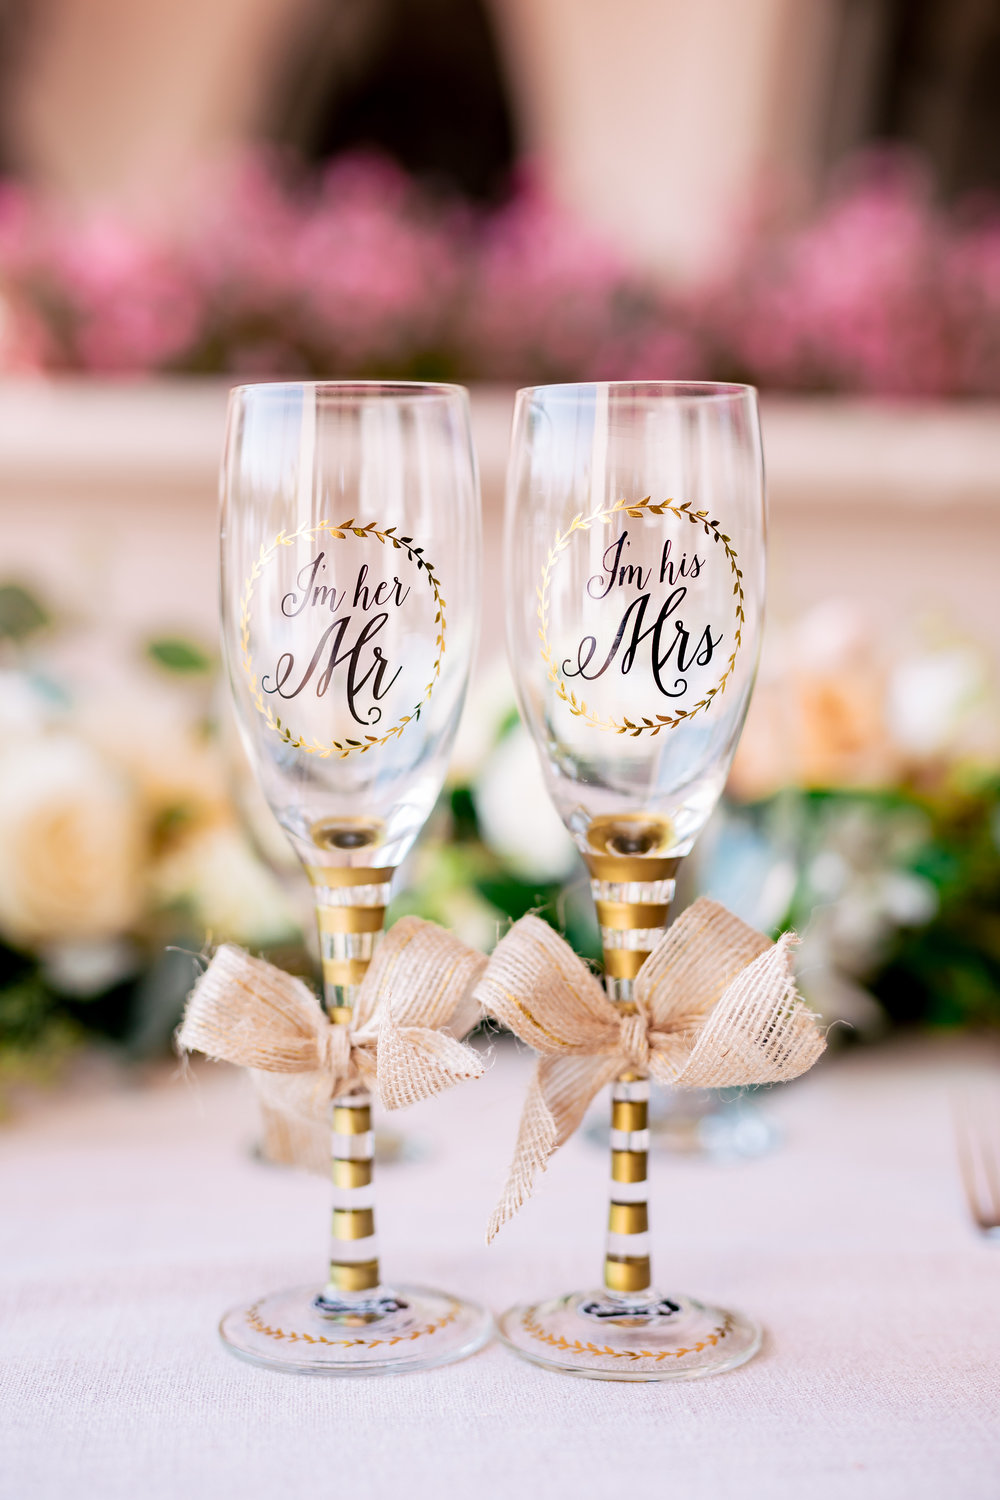 www.santabarbaraweddingstyle.com | Rewind Photography | Events by M and M | Hilton Santa Barbara | Champagne Flutes